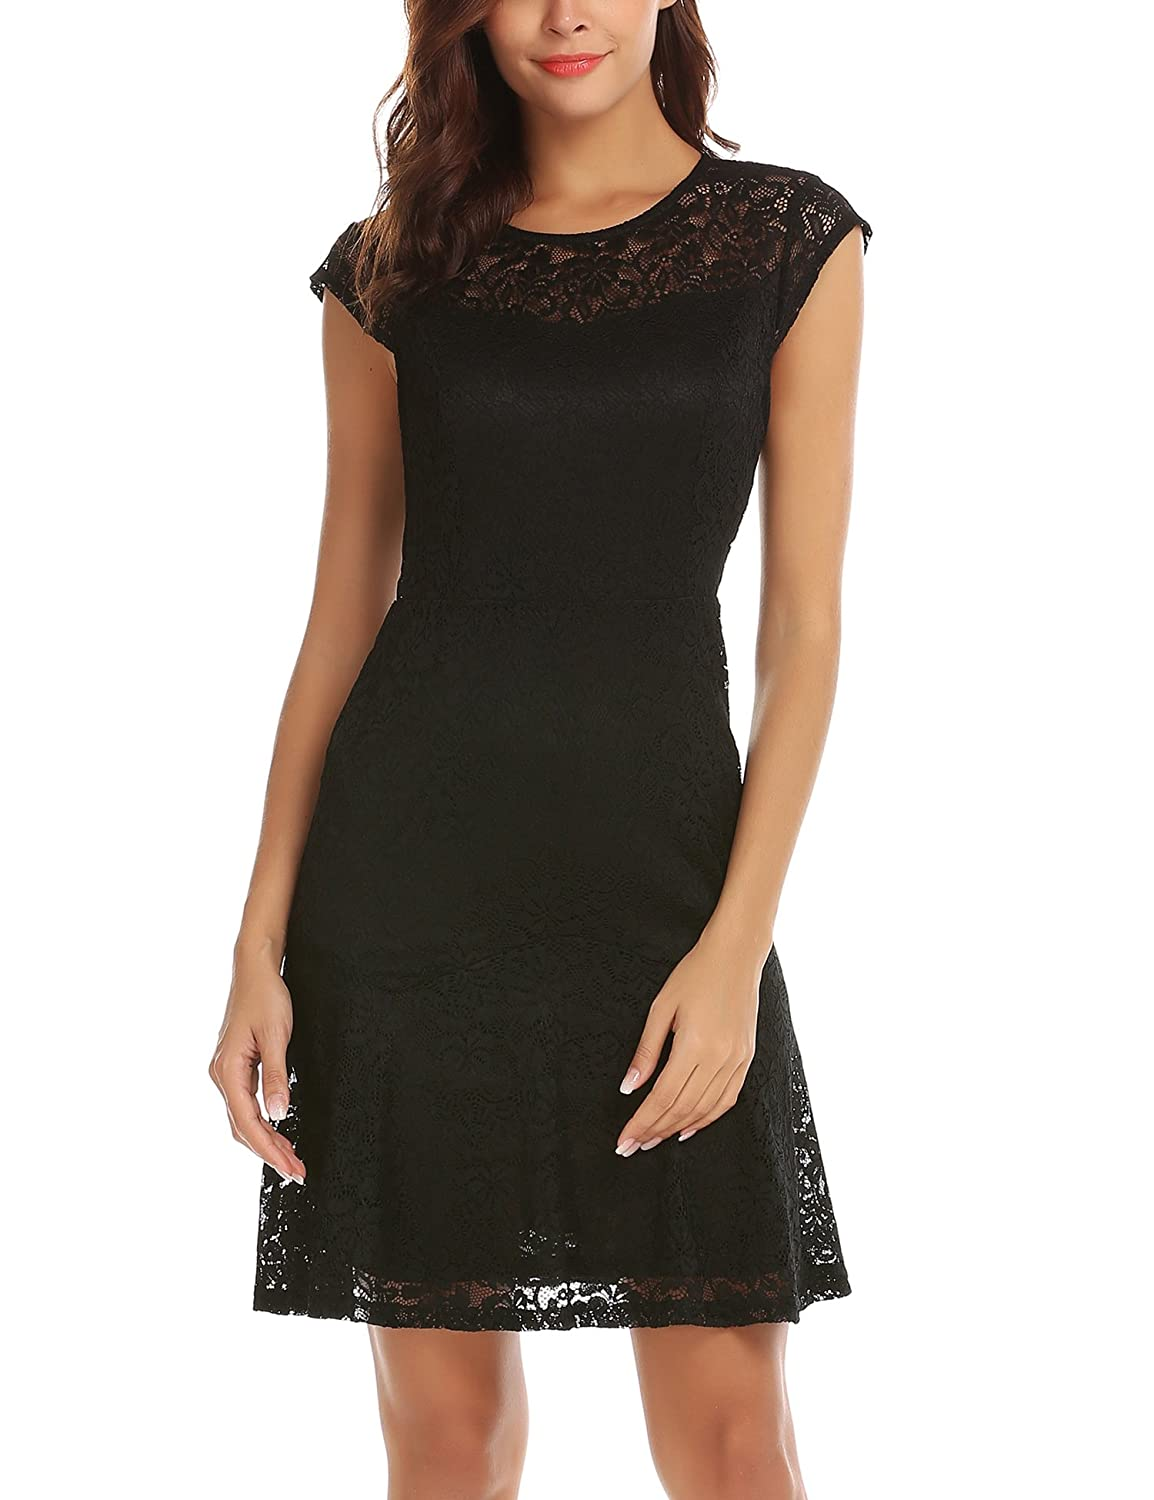 55f67b573918a Top 10 wholesale Keyhole Cocktail Dress - Chinabrands.com